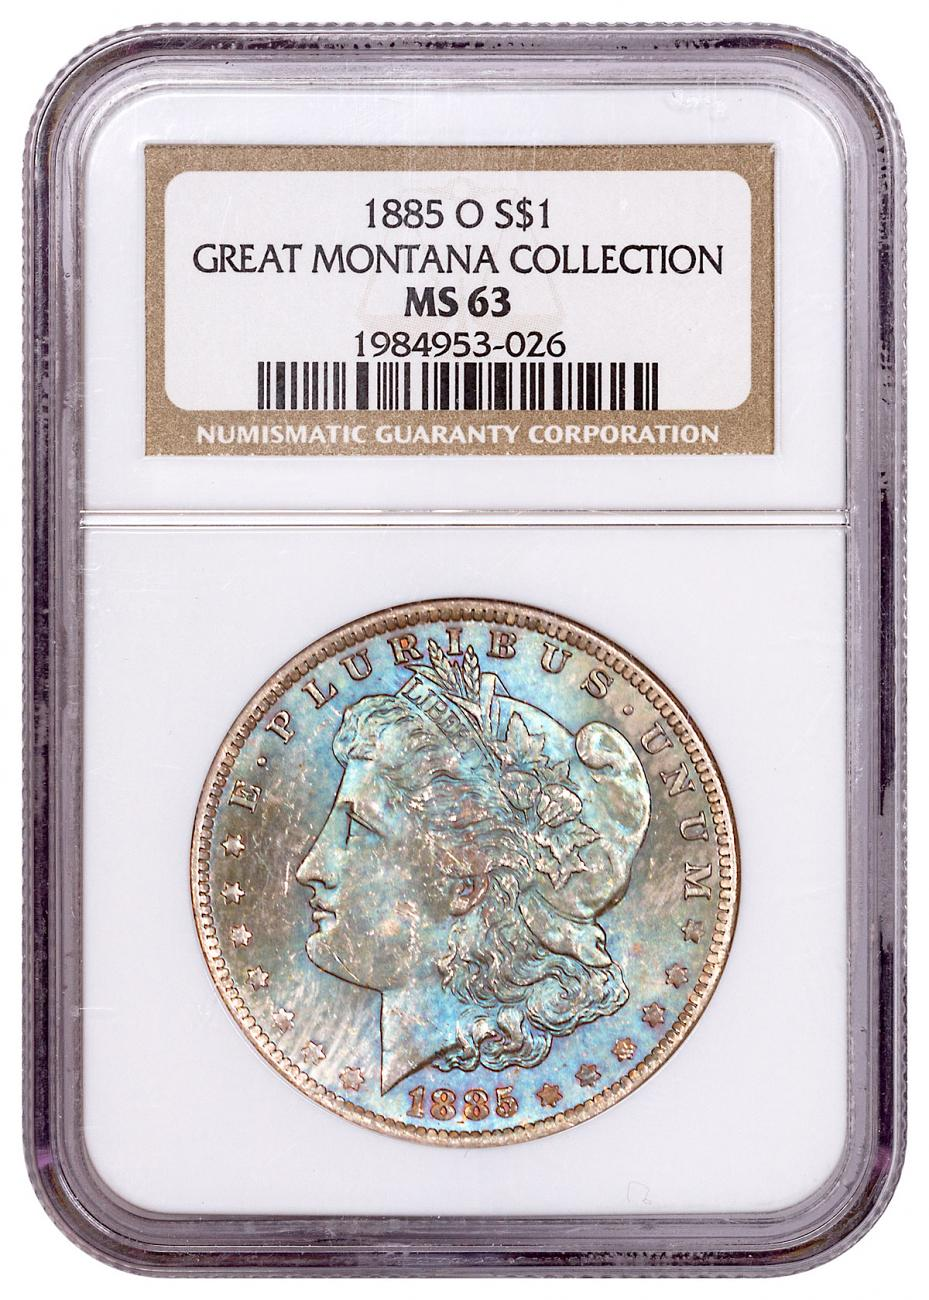 1885-O Morgan Silver Dollar From the Great Montana Collection NGC MS63 Toned CPCR 3026